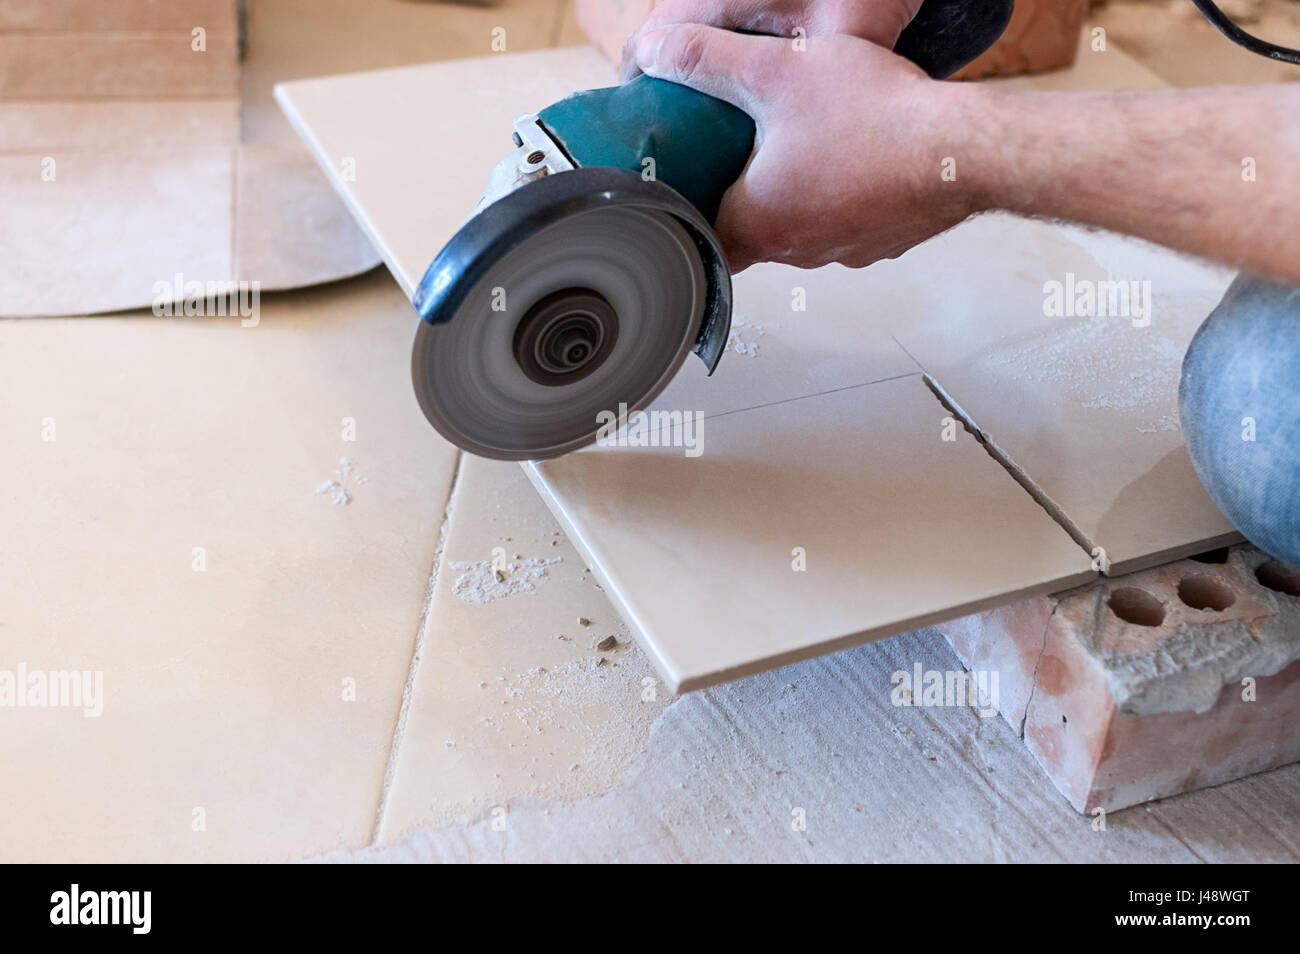 A construction worker cutting a tile using an angle grinder stock a construction worker cutting a tile using an angle grinder dailygadgetfo Choice Image